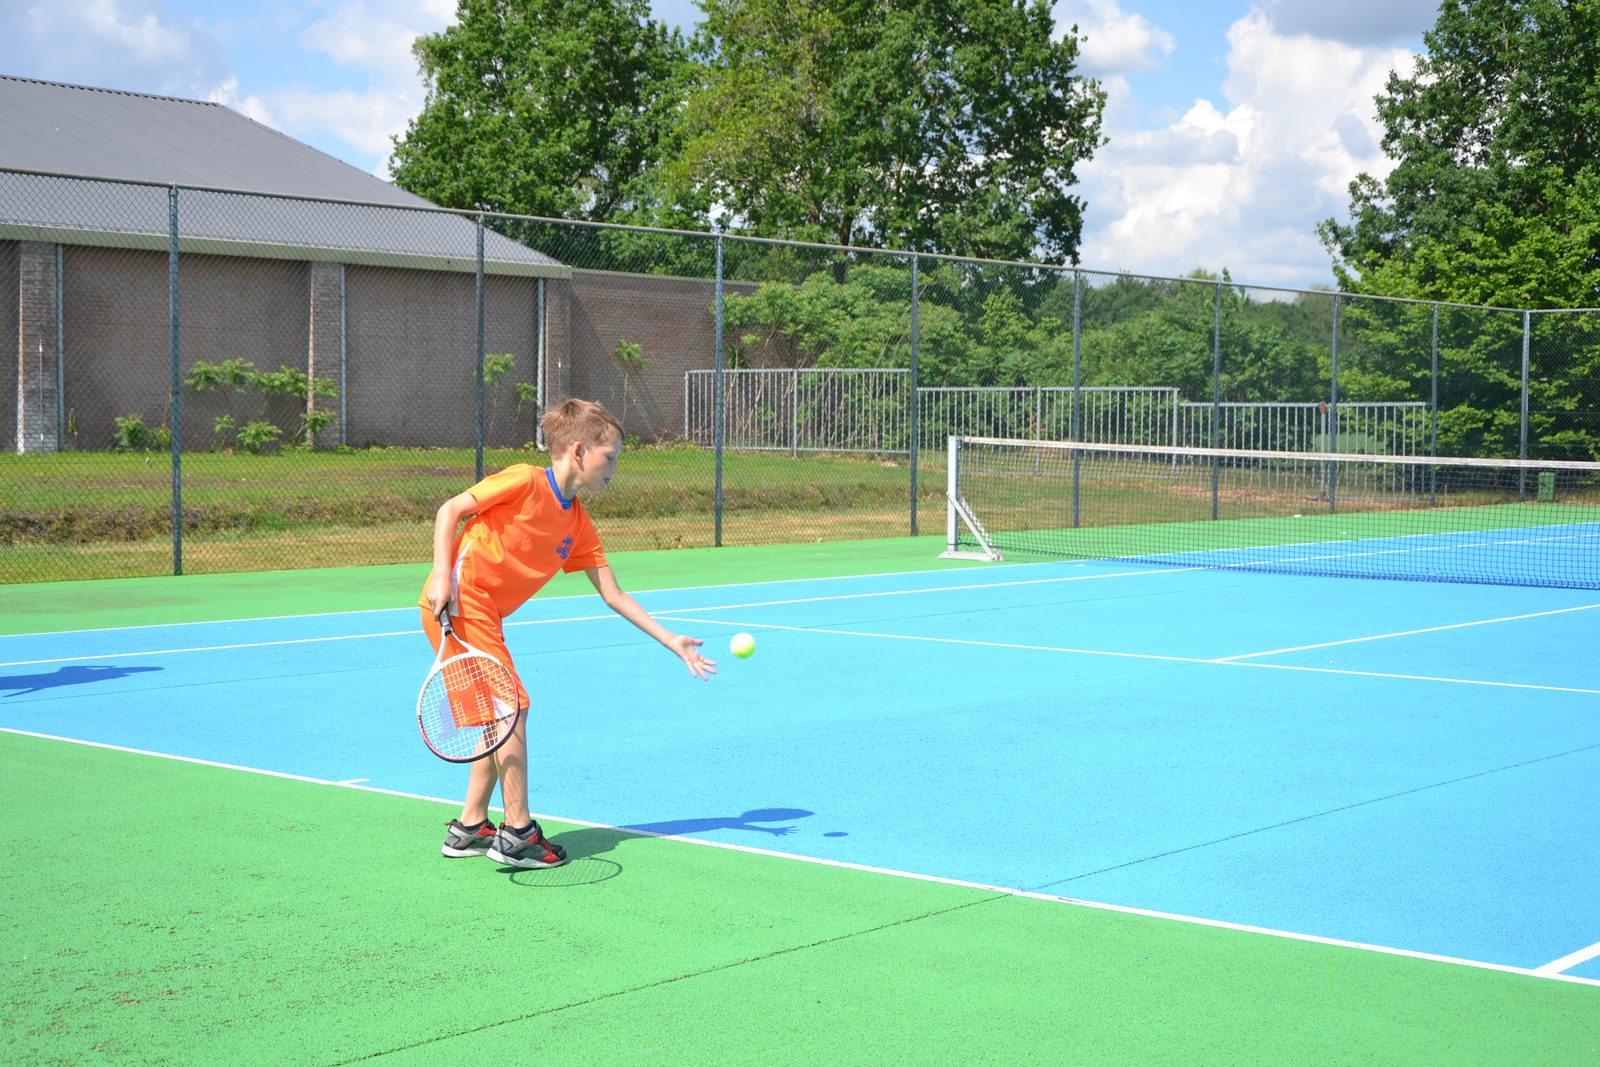 Tennis at our all-weather tennis court